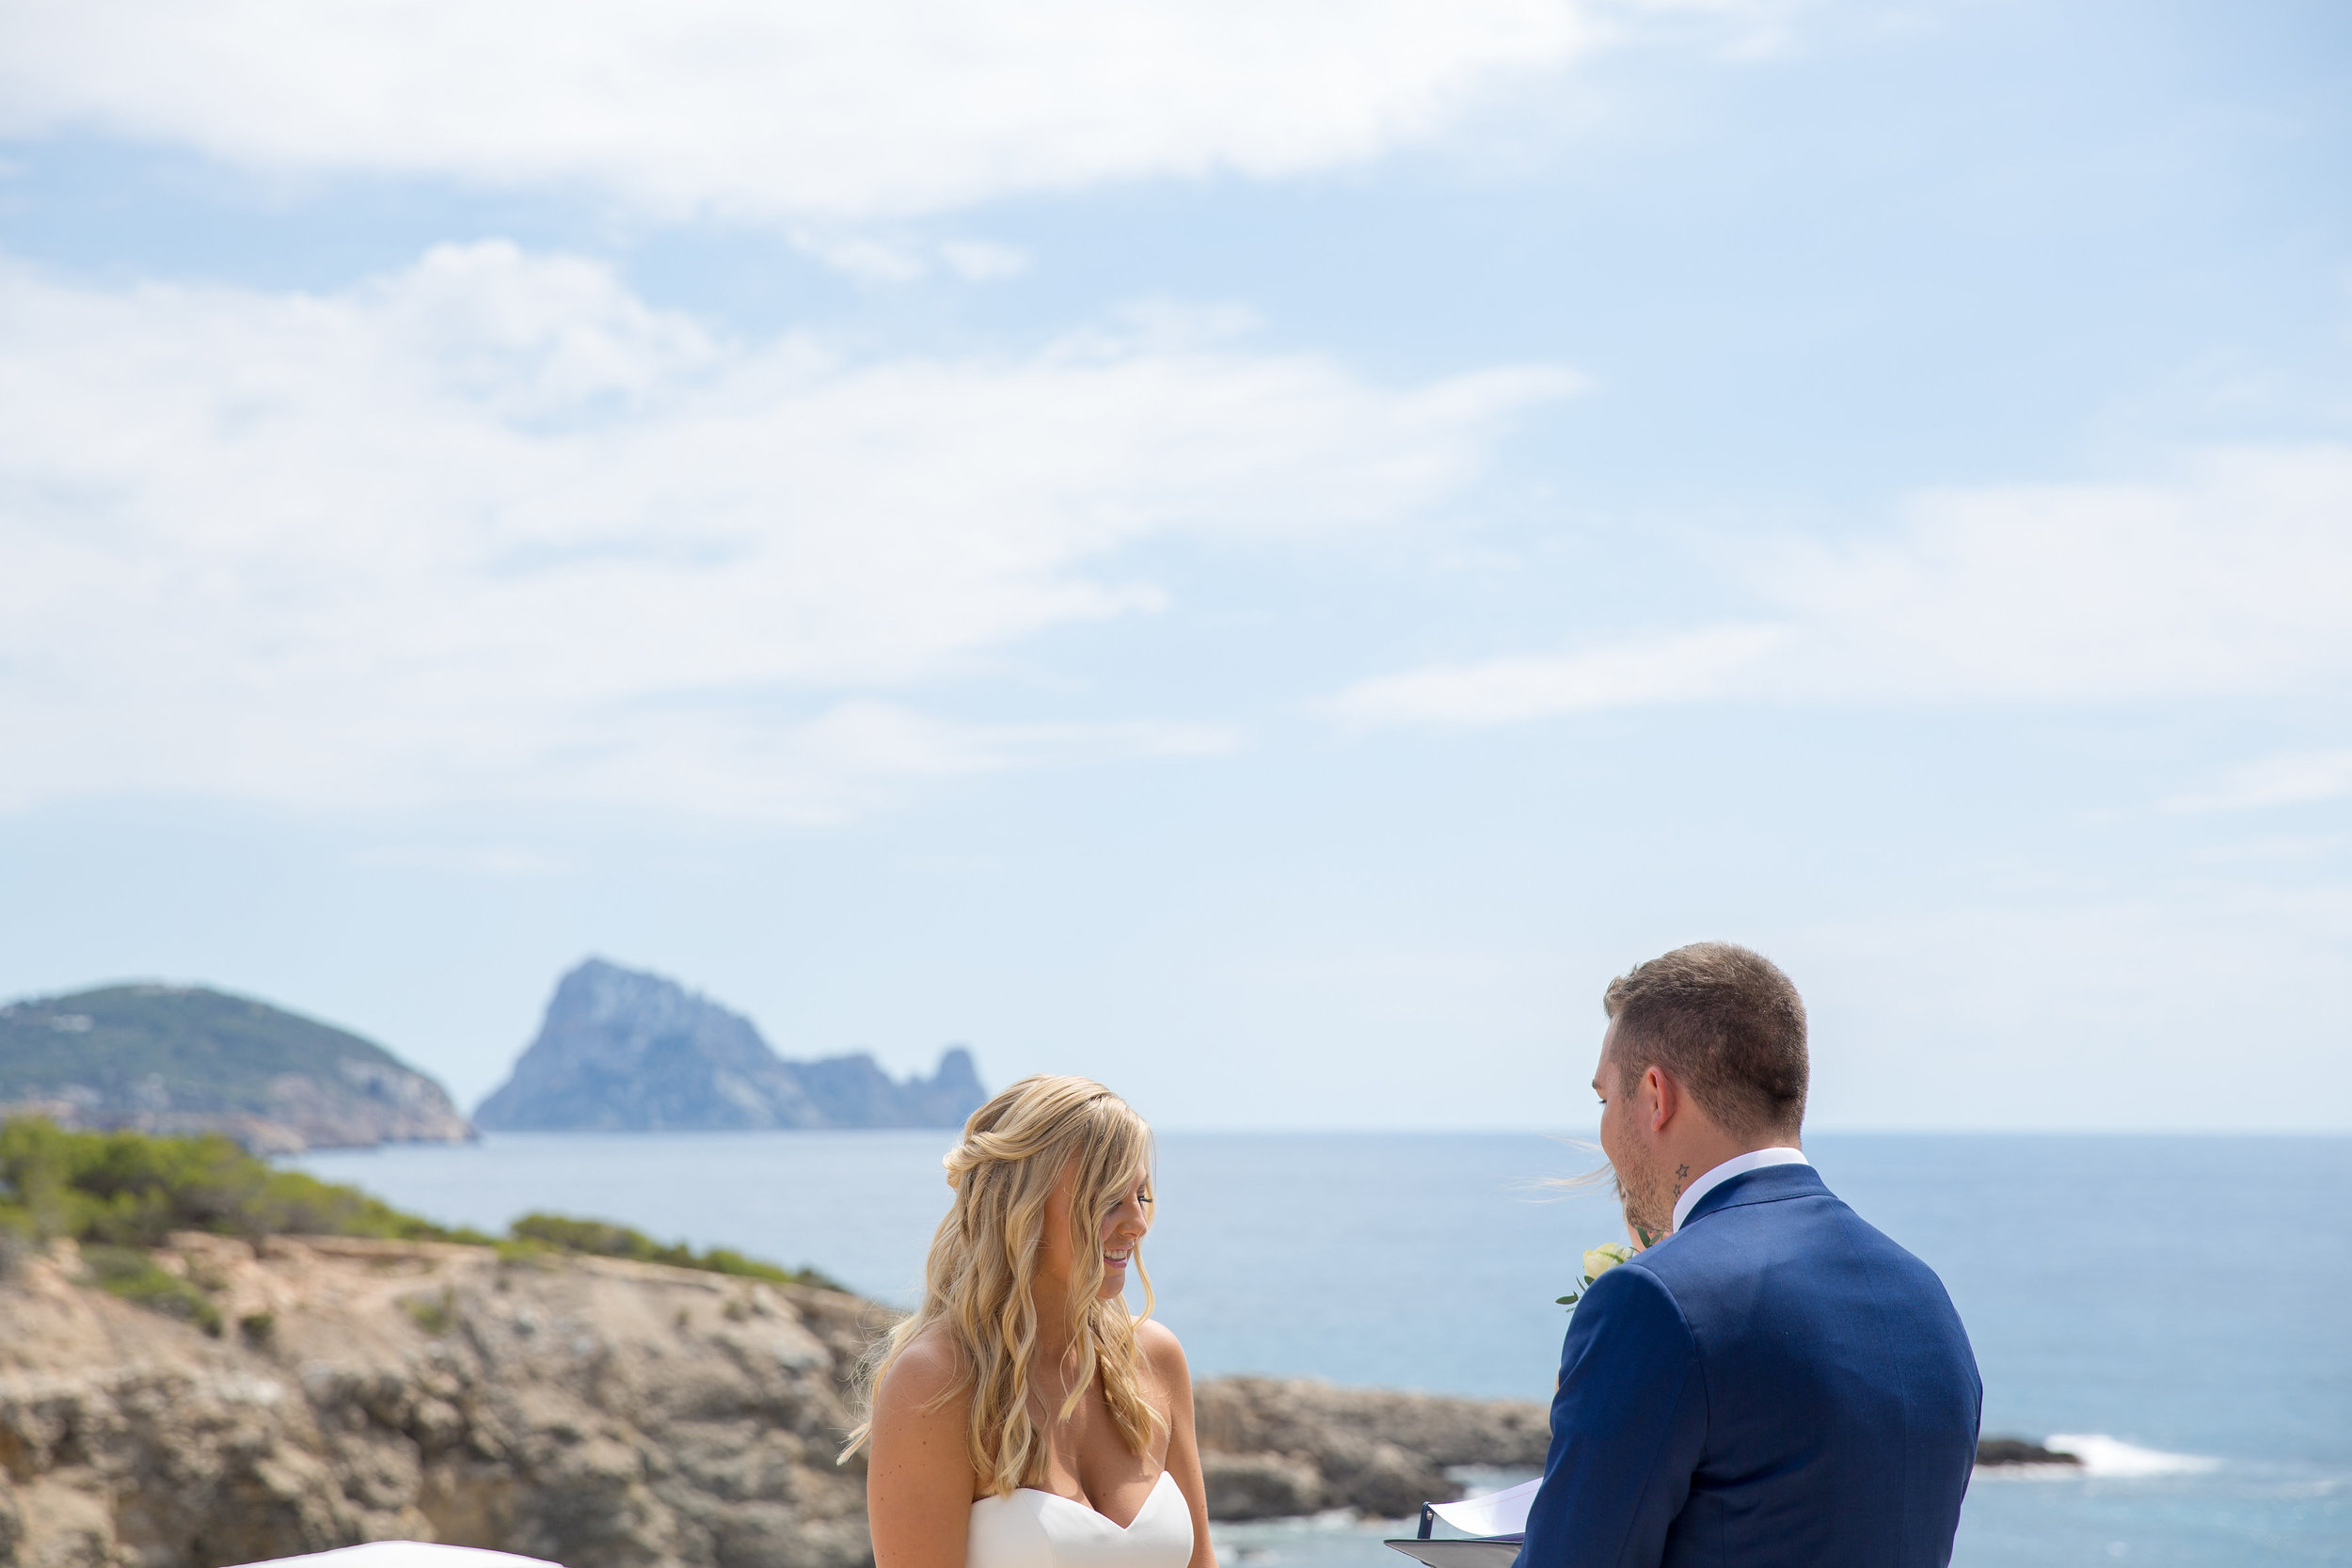 Bride and Groom exchanging vows at Elixir, Ibiza. Photo by Matt Morgan